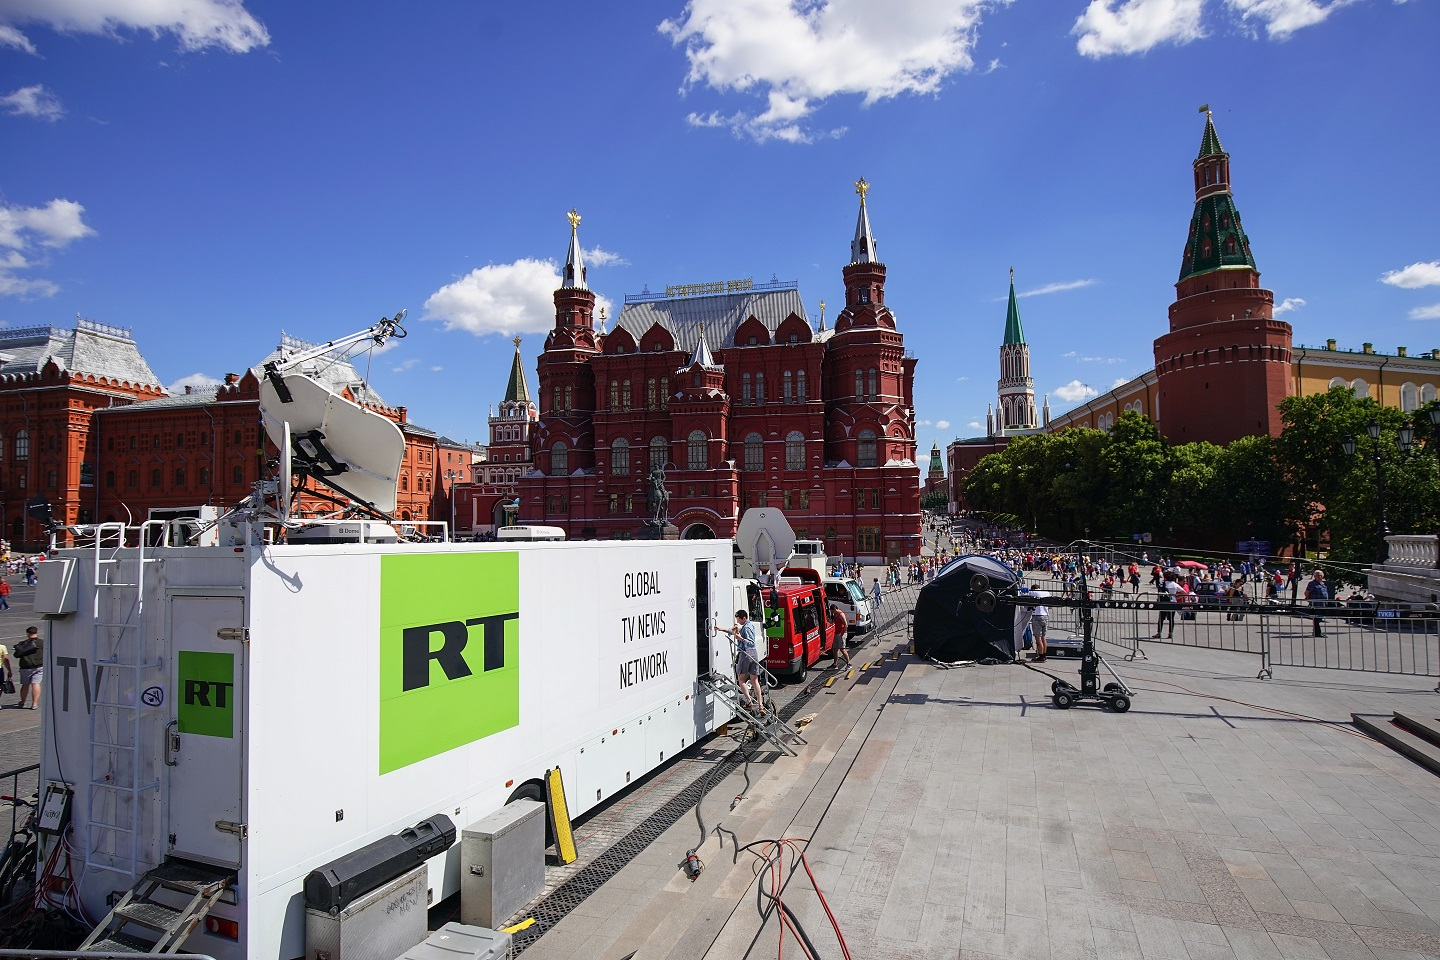 A photograph of a RT broadcasting van near Red Square